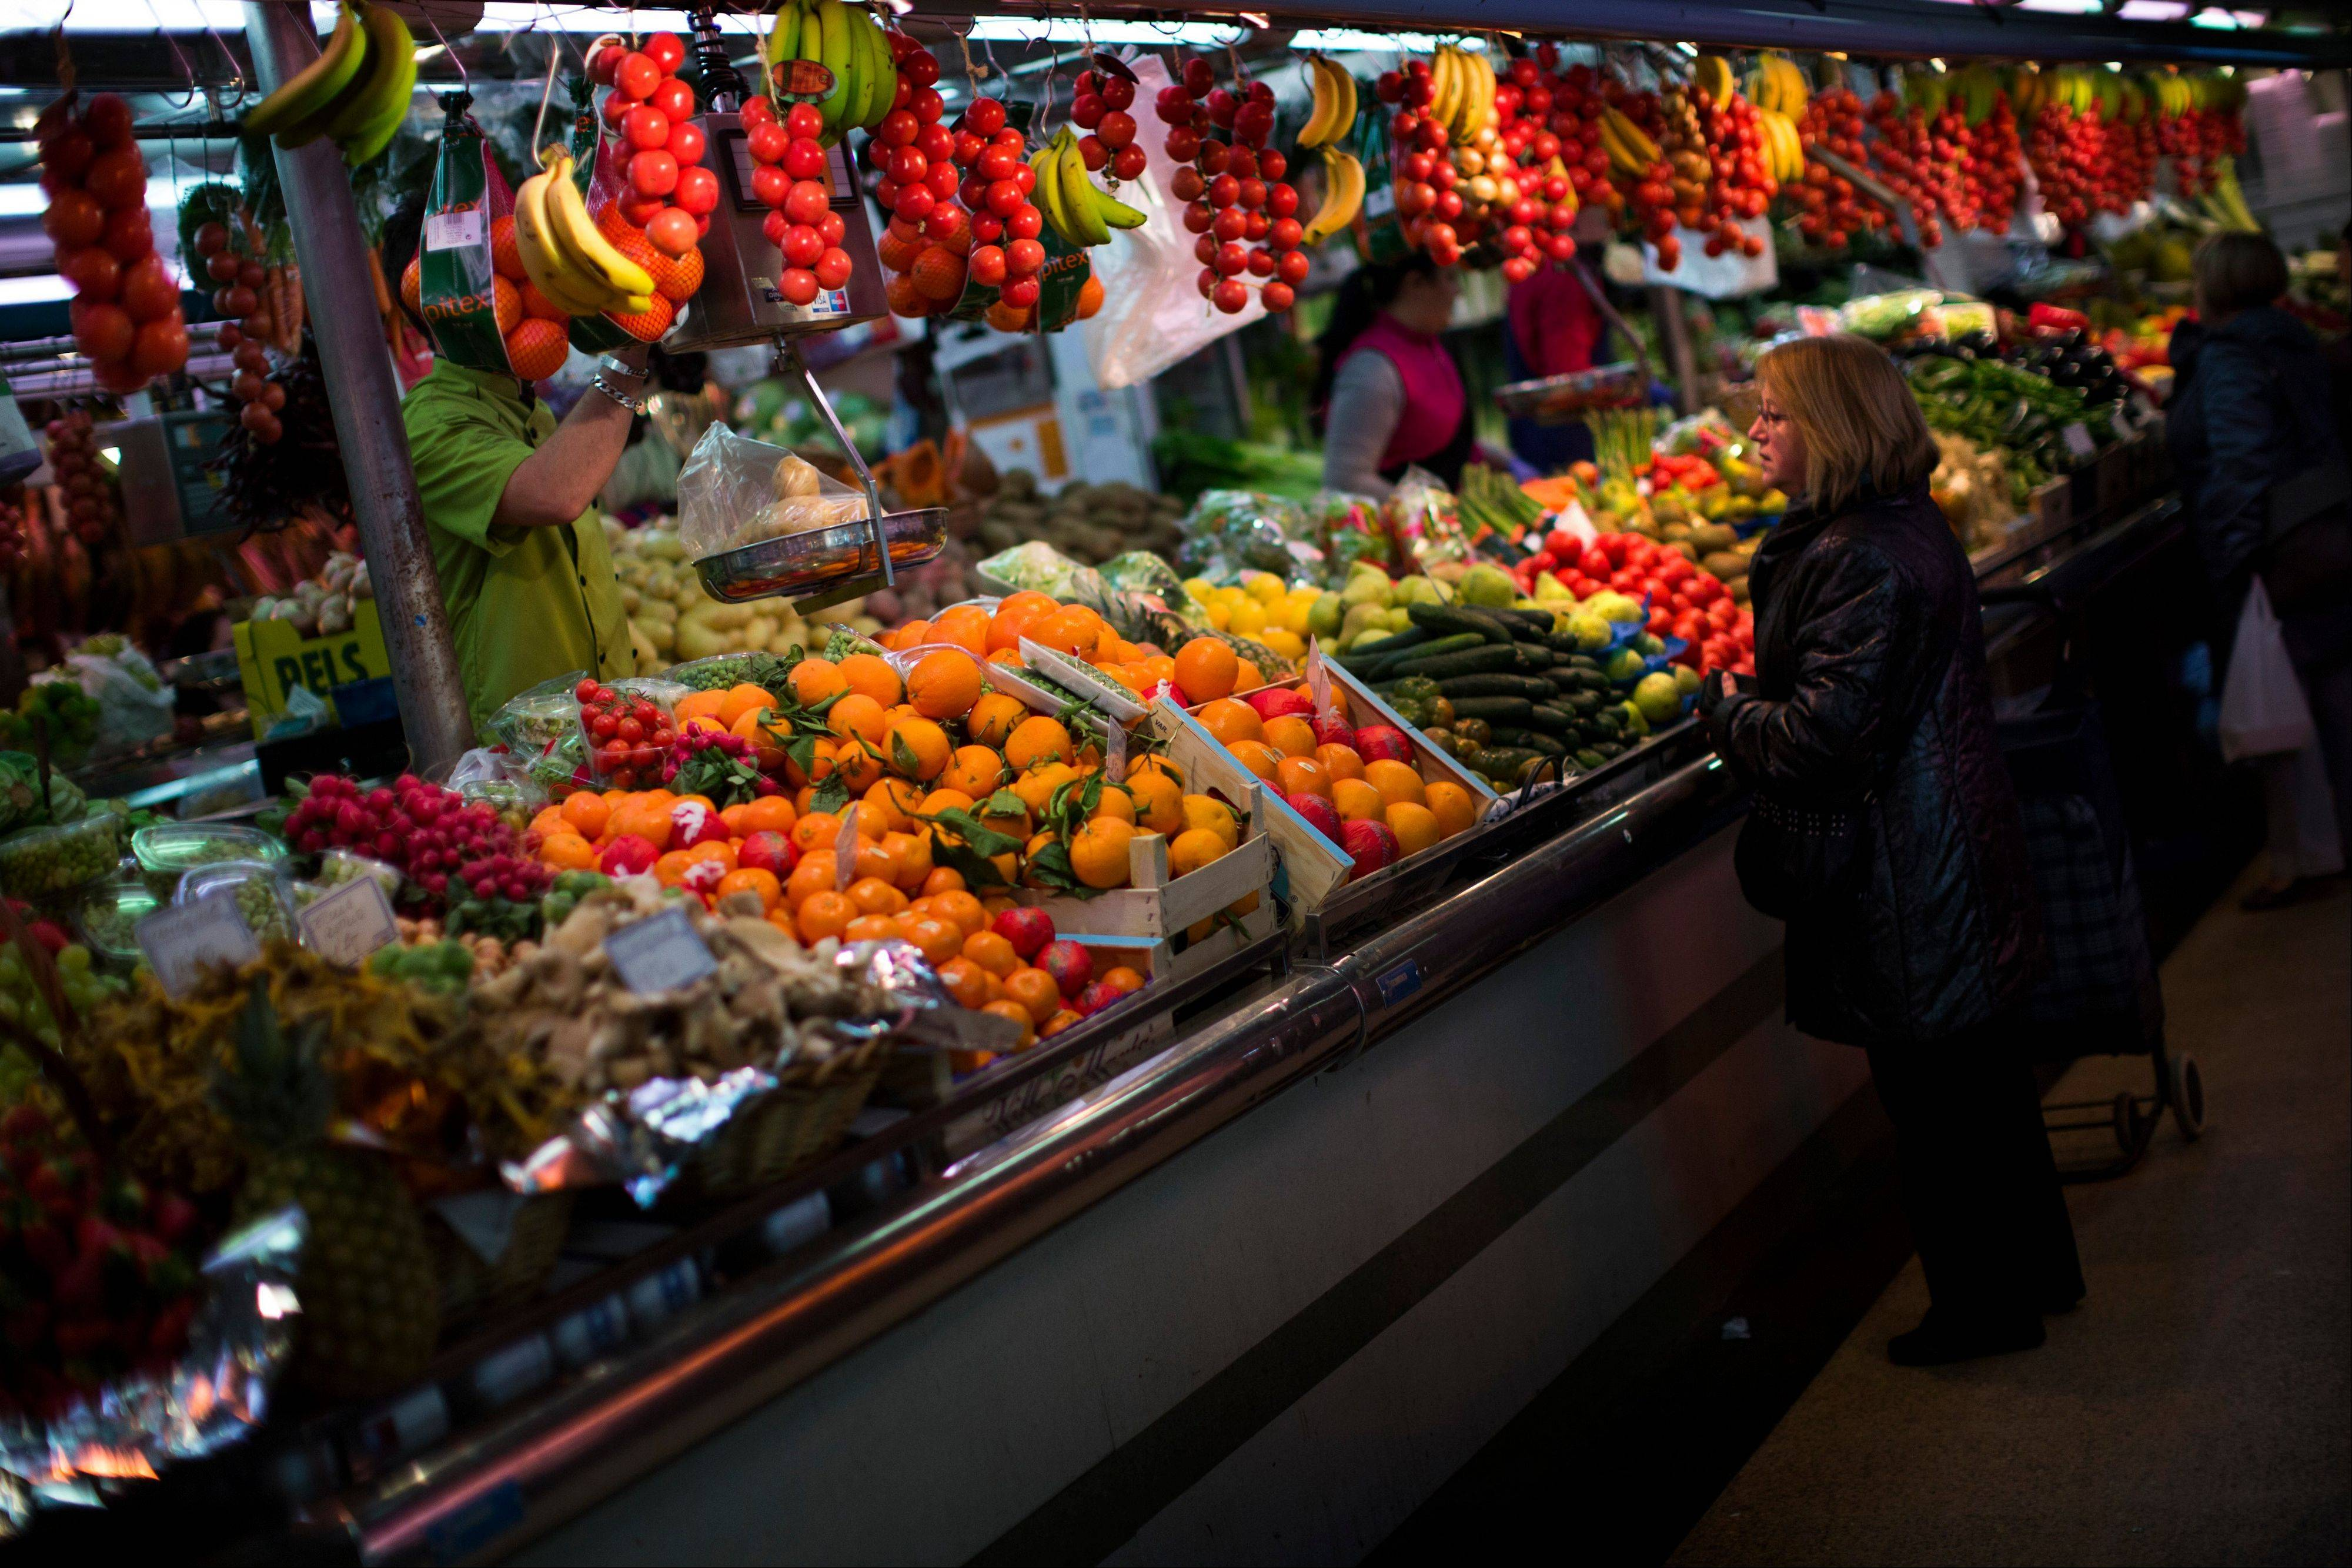 Mediterranean diets have long been touted as heart-healthy, but that�s based on observational studies. Now, one of the longest and most scientific tests suggests this style of eating can cut the chance of suffering heart-related problems, especially strokes, in older people at high risk of them.